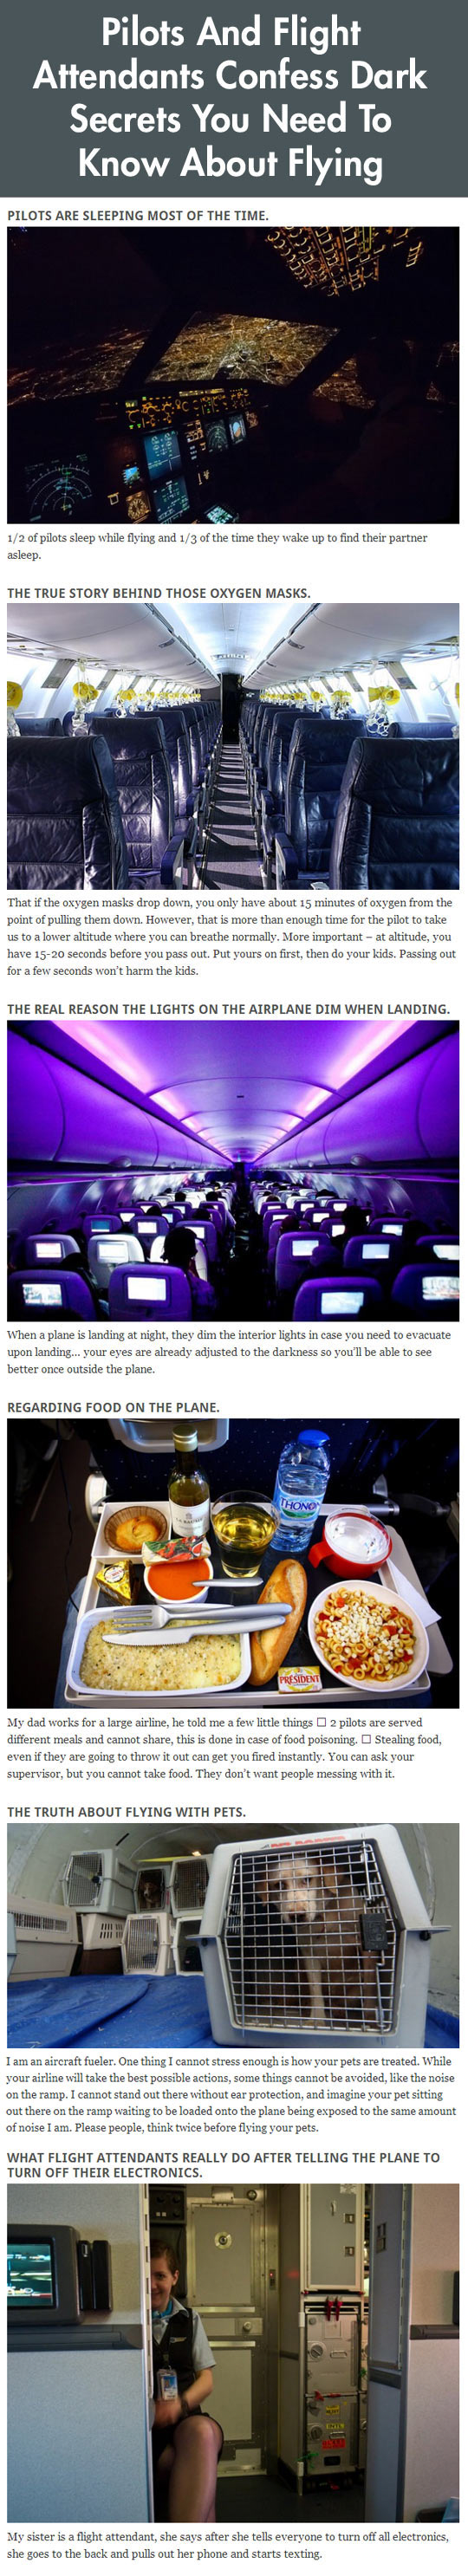 Truth About Flying